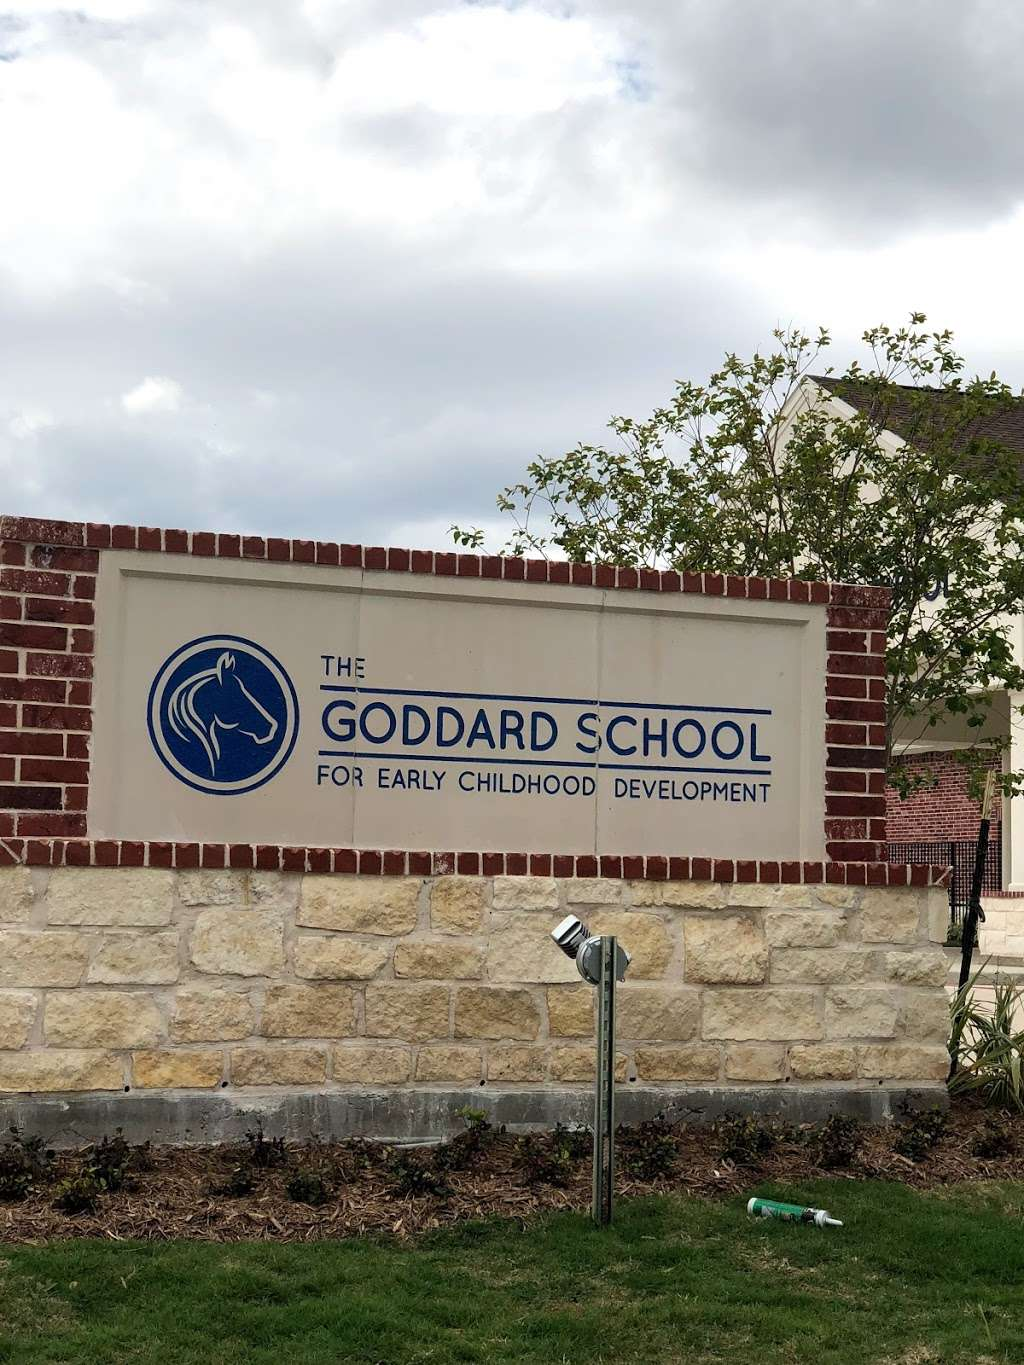 The Goddard School - school  | Photo 8 of 9 | Address: 6500 E Riverpark Dr Drive, Sugar Land, TX 77479, USA | Phone: (281) 972-7788